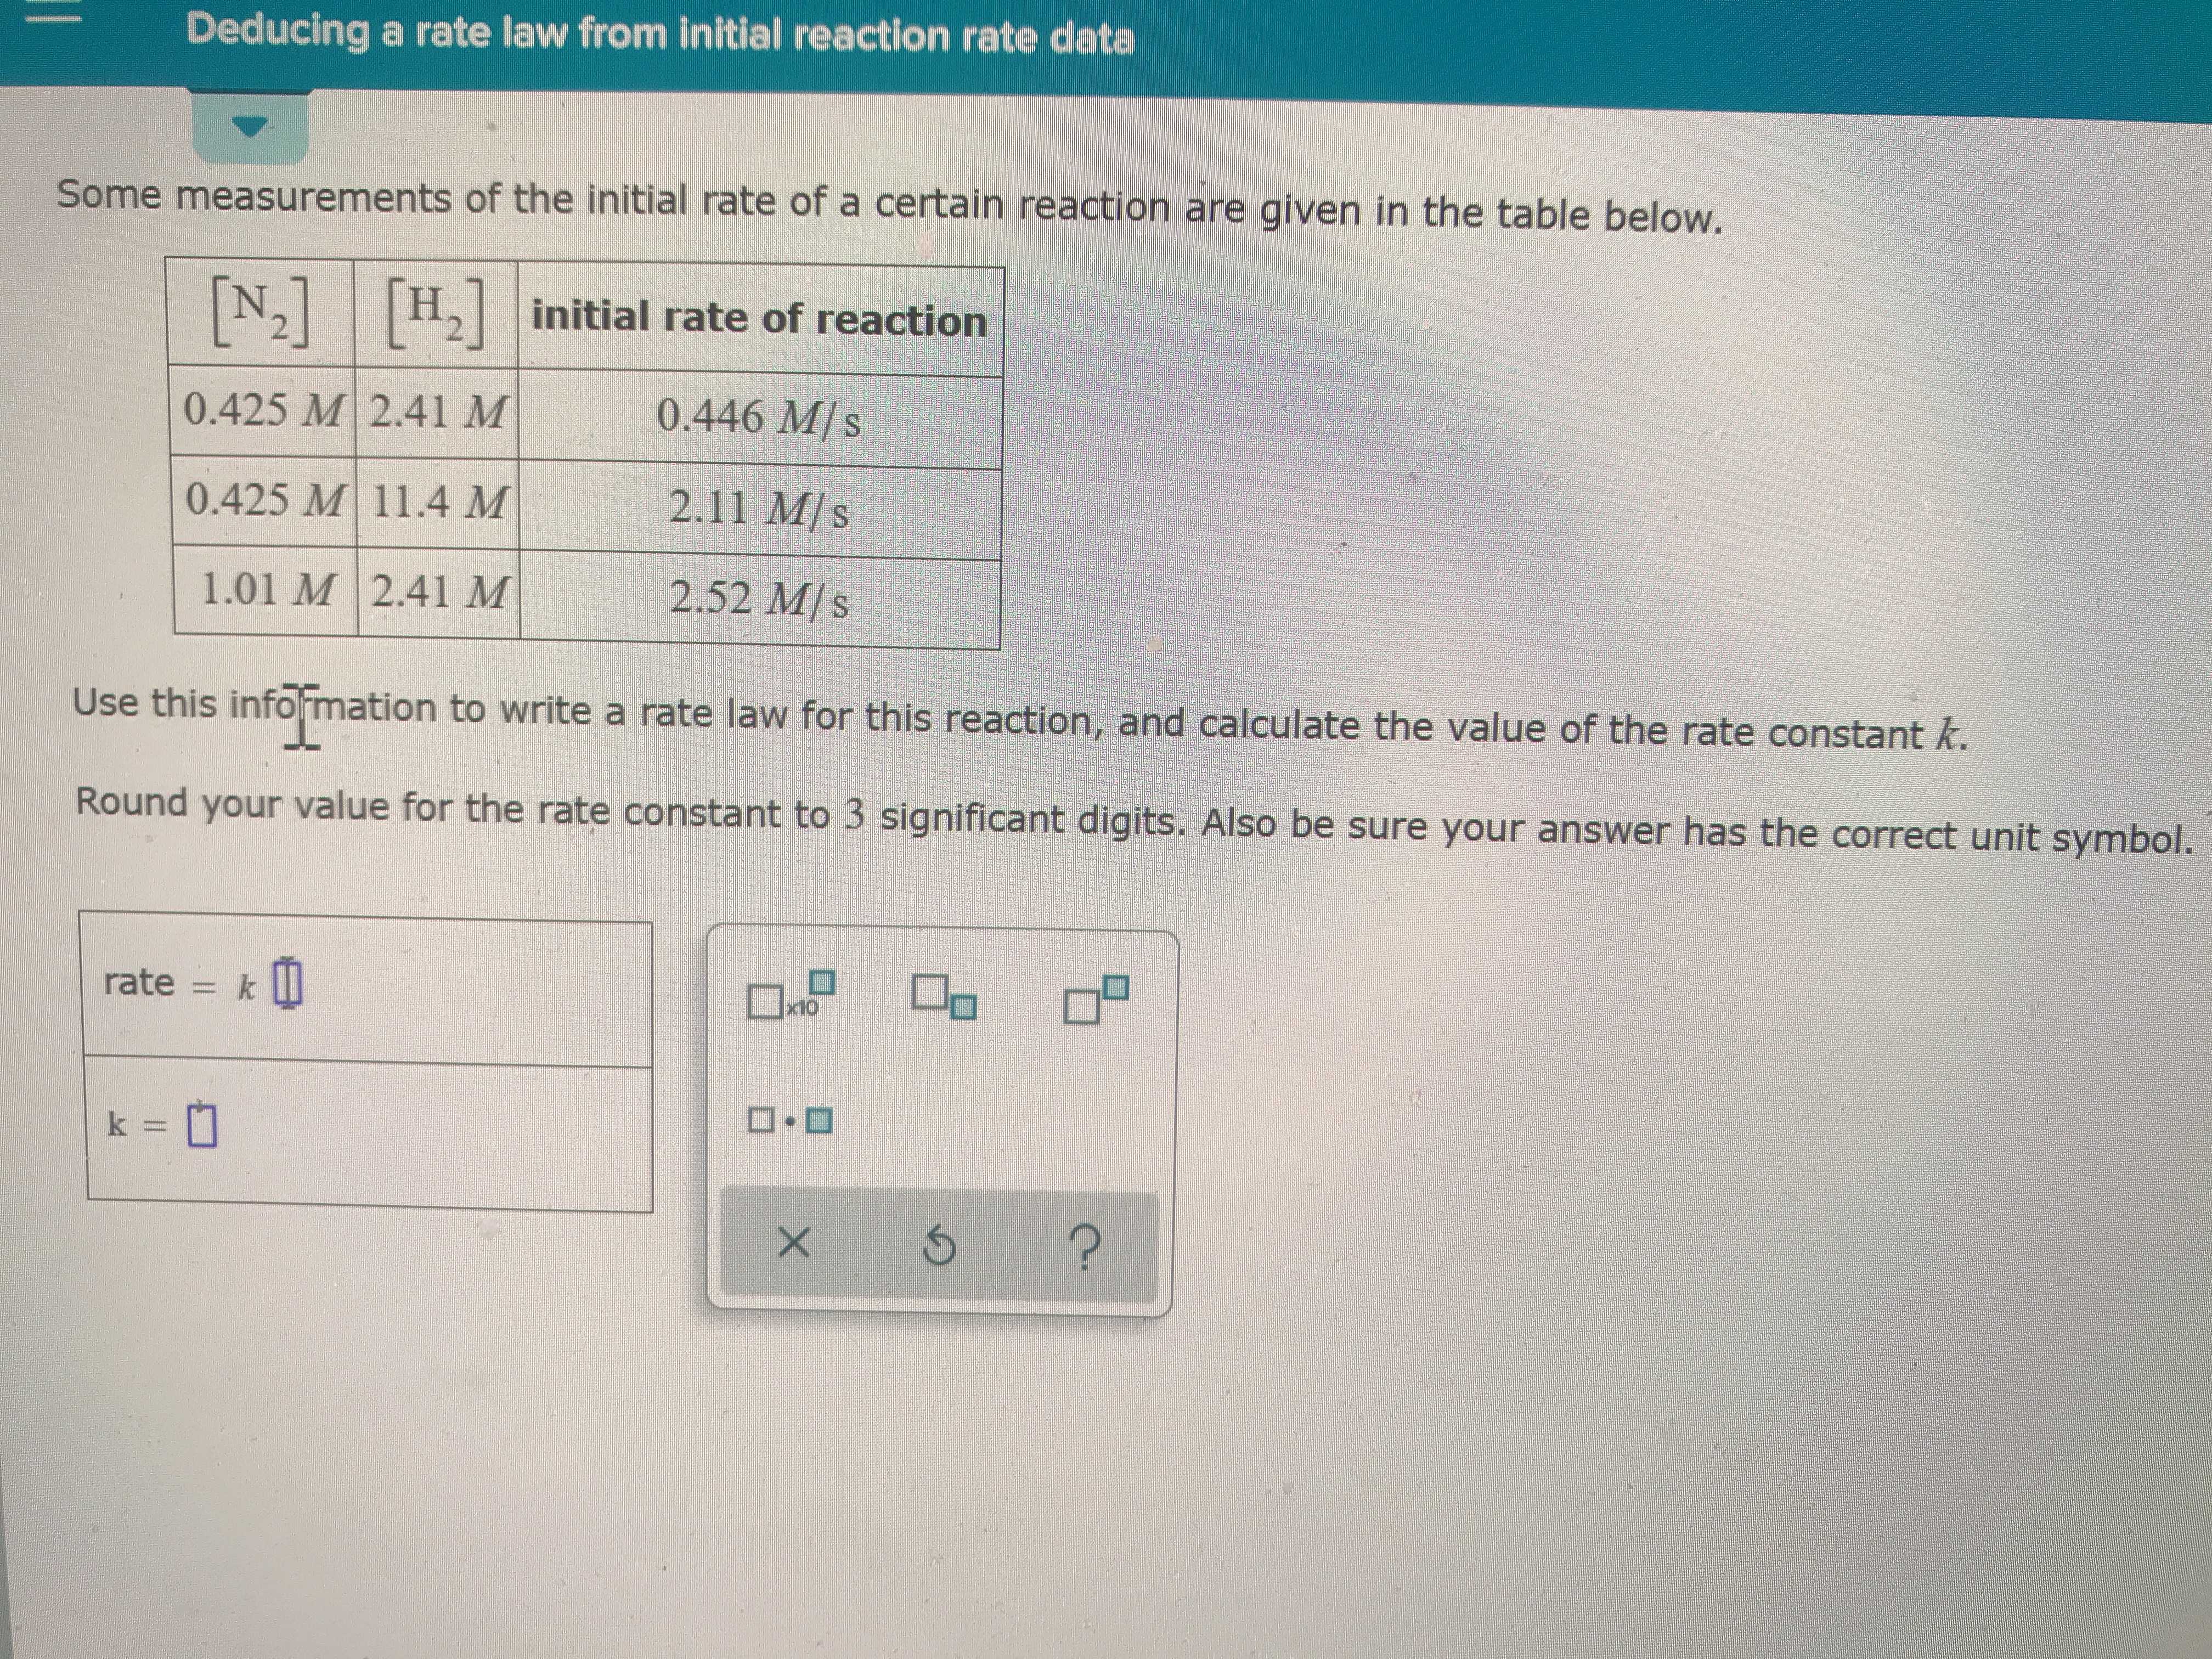 Deducing a rate law from initial reaction rate data Some measurements of the initial rate of a certain reaction are given in the table below. Hinitial rate of reaction N2 0.446 M/s 0.425 M 2.41 M 2.11 M/s 0.425 M 11.4 M 2.52 M/s 1.01 M 2.41 M Use this infomation to write a rate law for this reaction, and calculate the value of the rate constant k. Round your value for the rate constant to 3 significant digits. Also be sure your answer has the correct unit symbol. k II rate x10 k= ? X